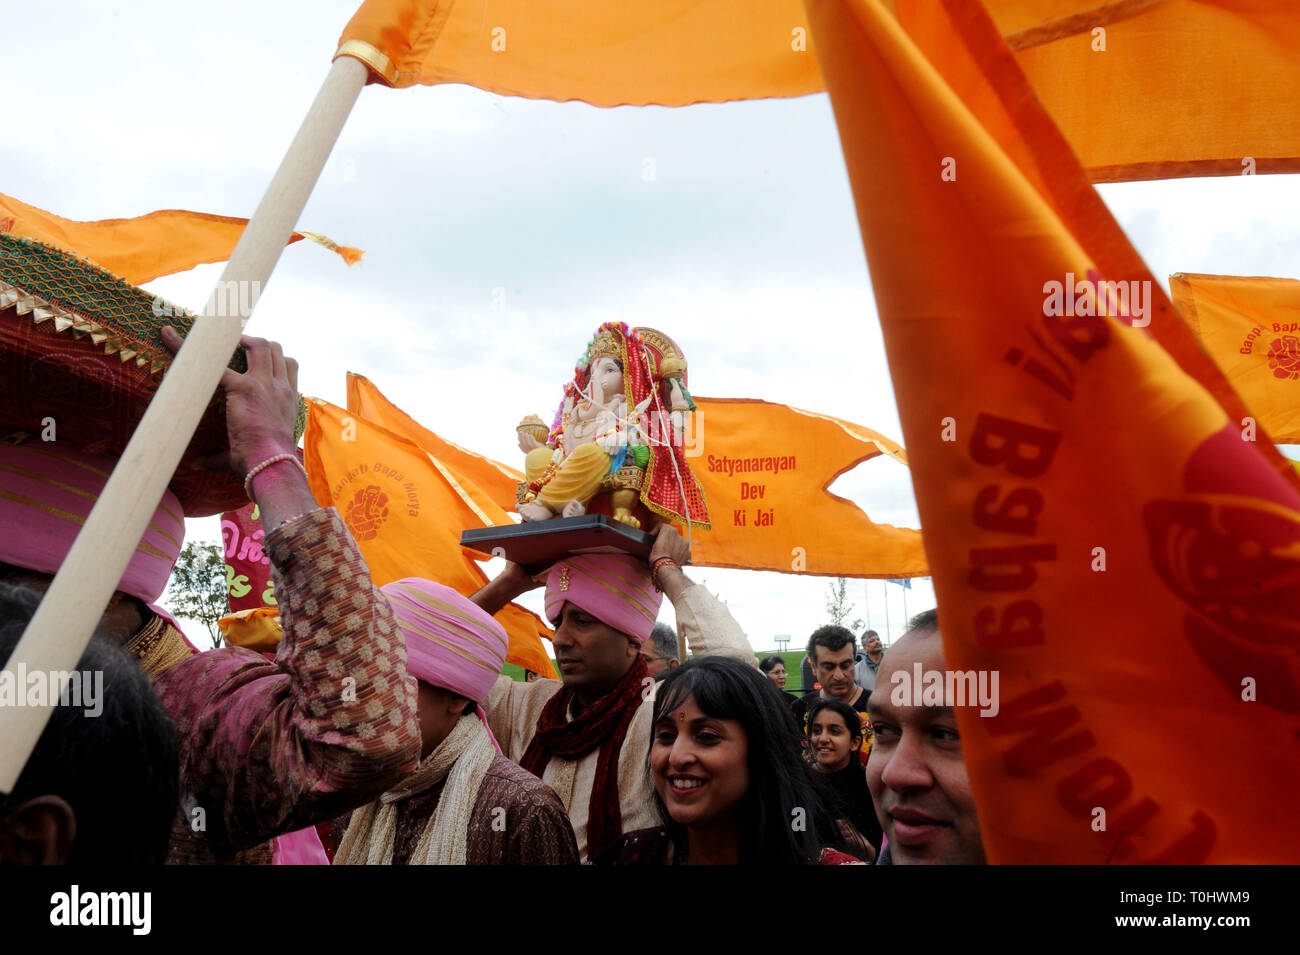 East beach, Shoeburyness Essex. Ganesha festival. Hindu worshippers processing with statue of the Elephant God Ganesh.   Picture Steve O'Connell   19 /09/2010 - Stock Image